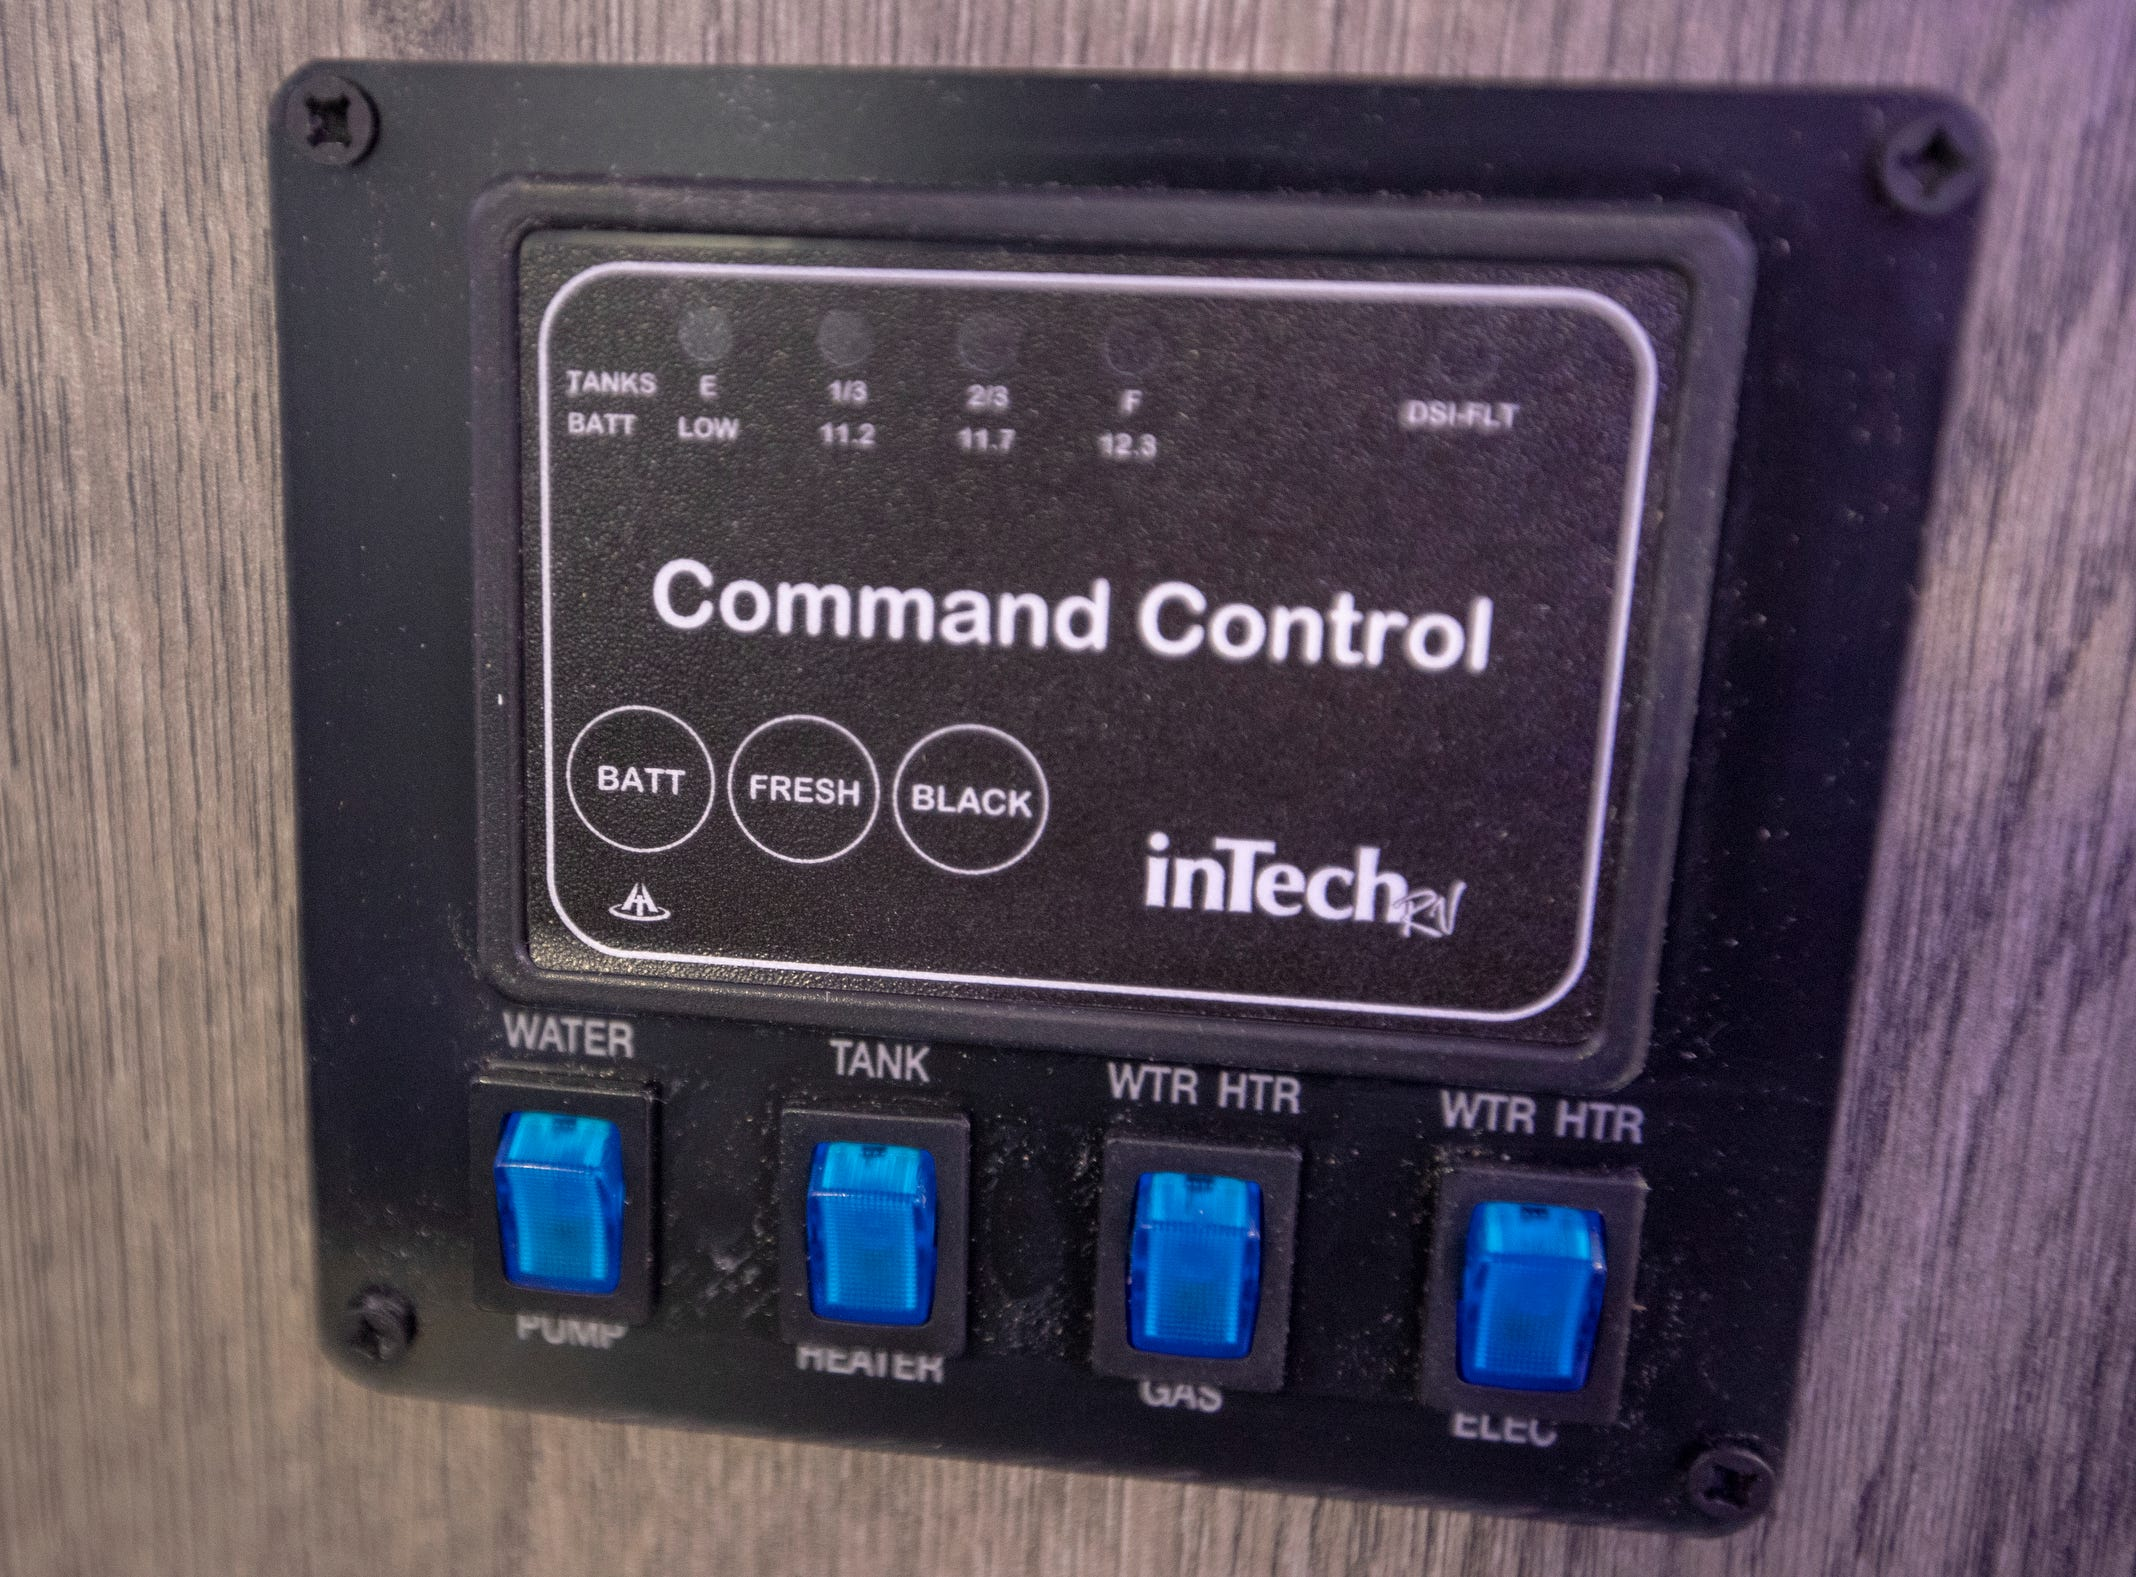 Controls on the 2019 Intech Sol, complete with a lot of modern touches like blue accent lights and a futuristic front end, at the Indy RV Expo, Indiana State Fairgrounds, Indianapolis, Sunday, January 6, 2019. The show runs through the 13th.